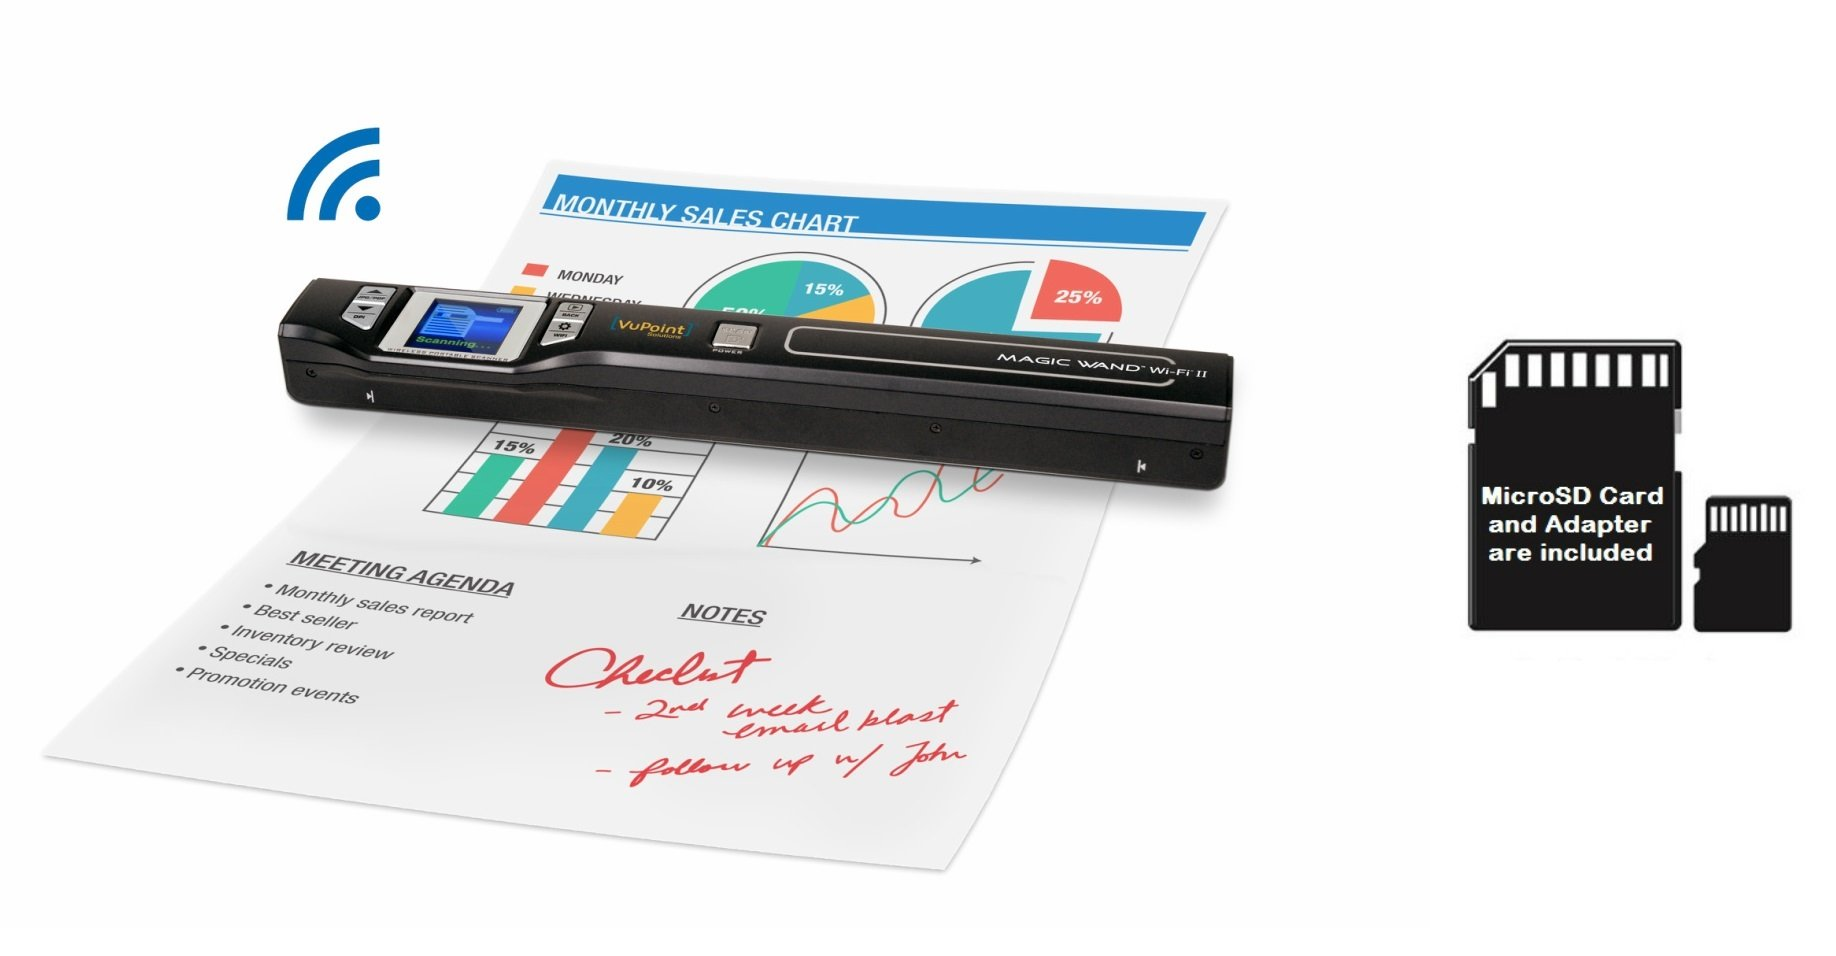 VuPoint Magic Wand Wireless Portable Scanner with Wi-Fi, Plus Bonus 8GB MicroSD Card, PC and Mac, Mobile/Portable PDSWF-ST47-VP